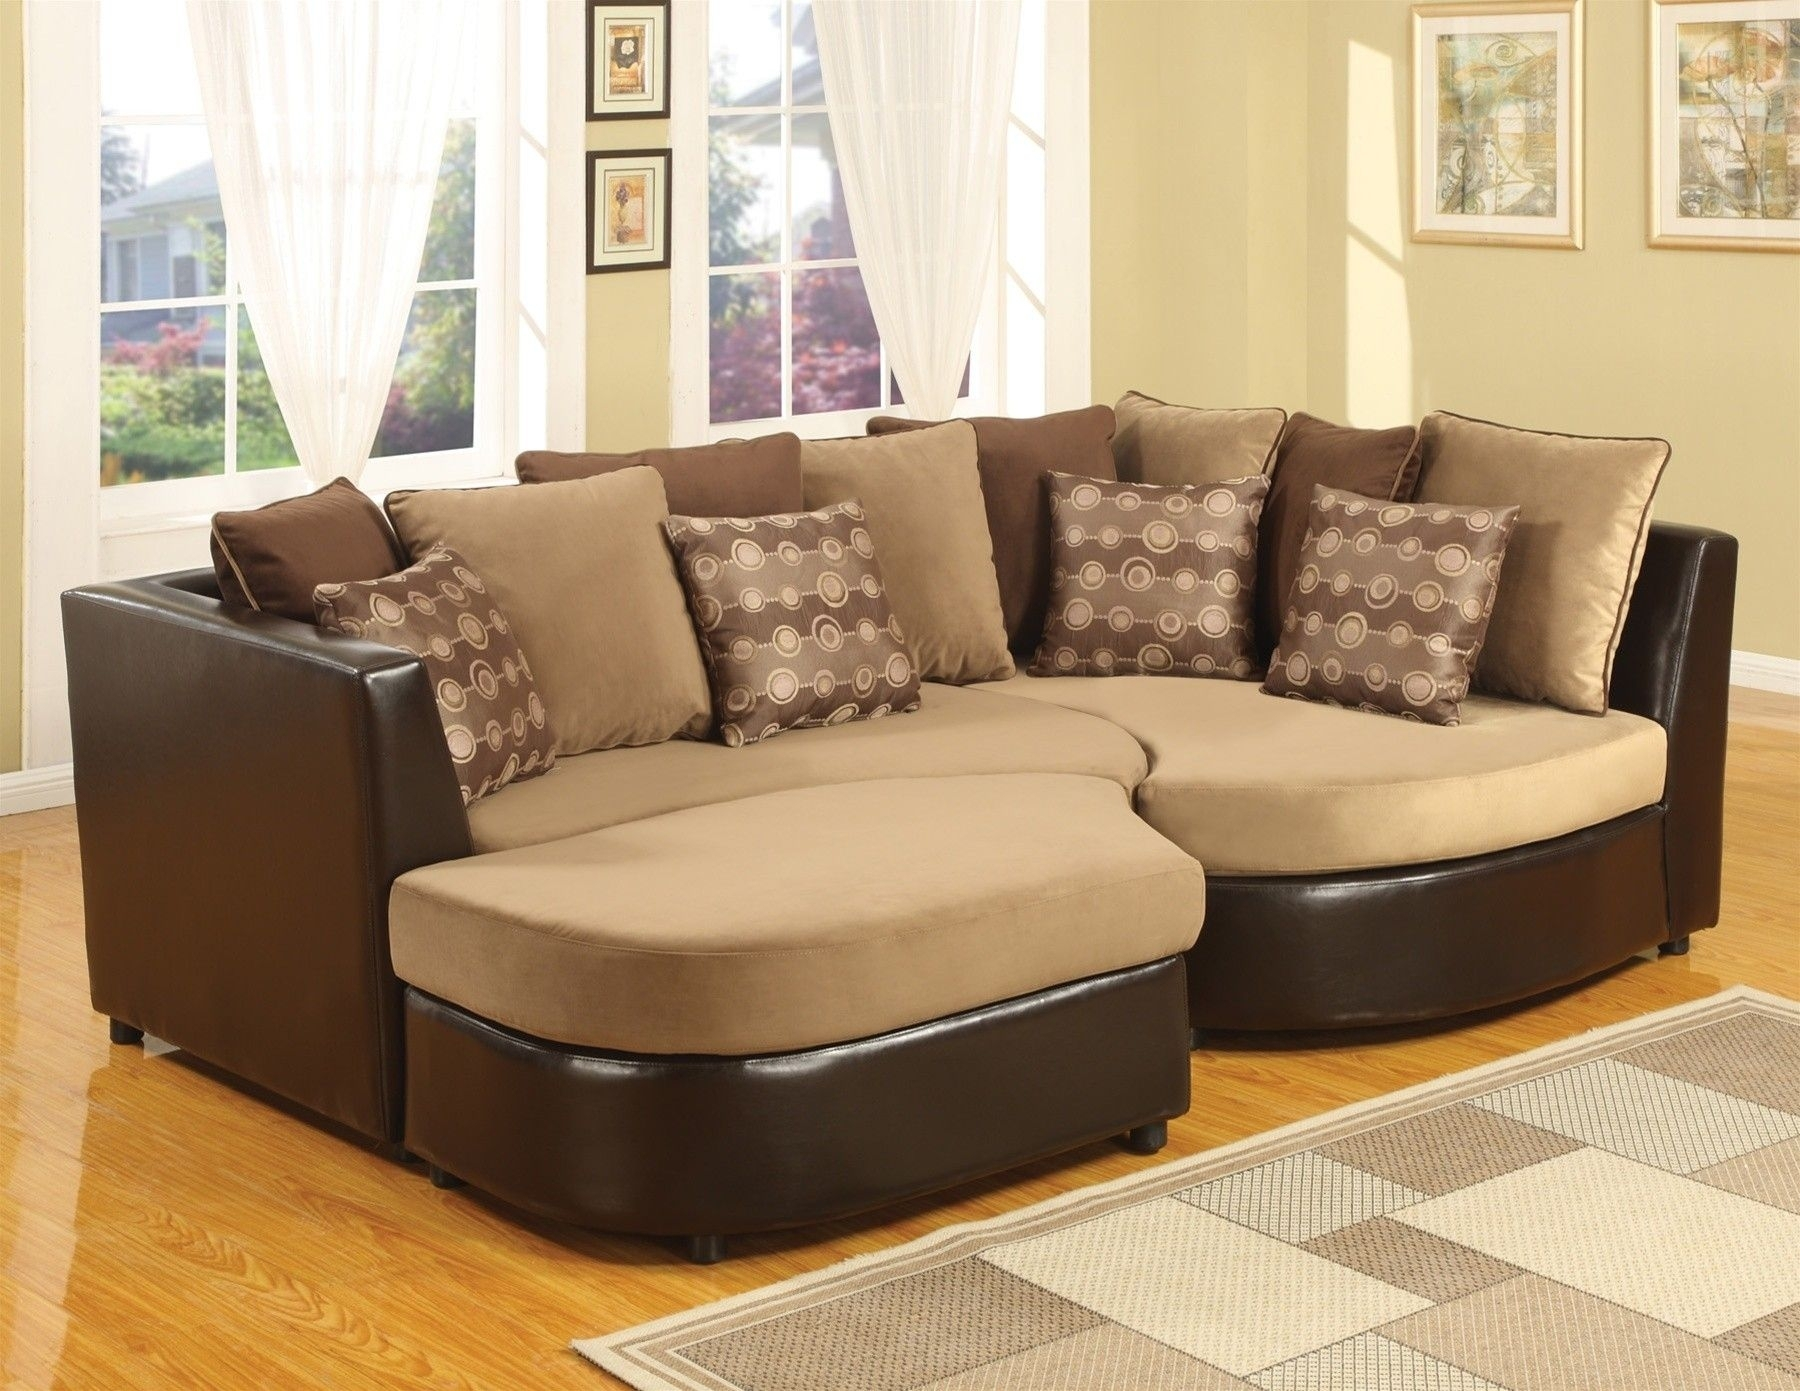 4 Piece Sectional Puzzle Sofa | Http://ml2R | Pinterest | House With Macon Ga Sectional Sofas (View 3 of 10)